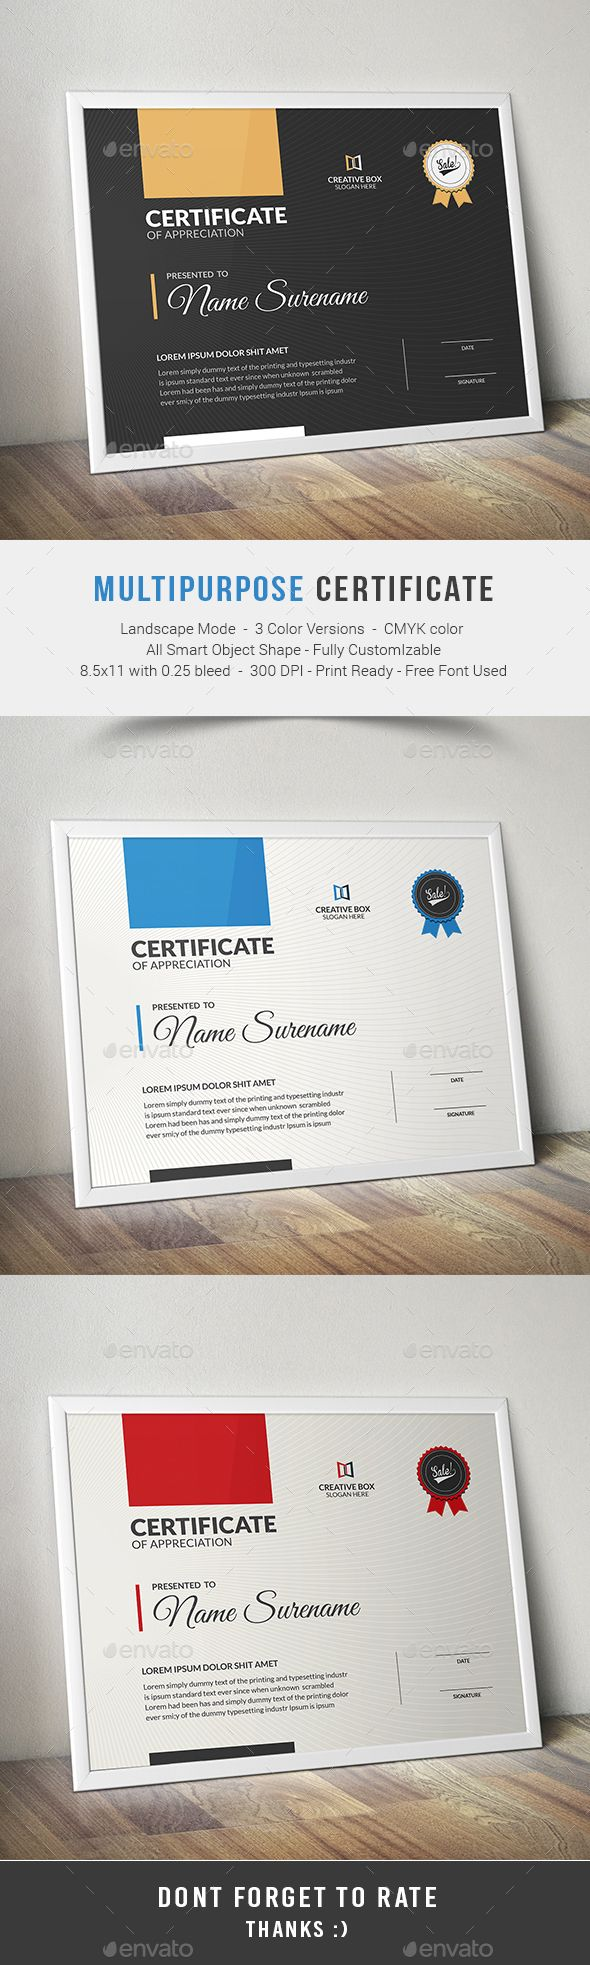 21 best Modern Certificate Design images – Certificate Layout